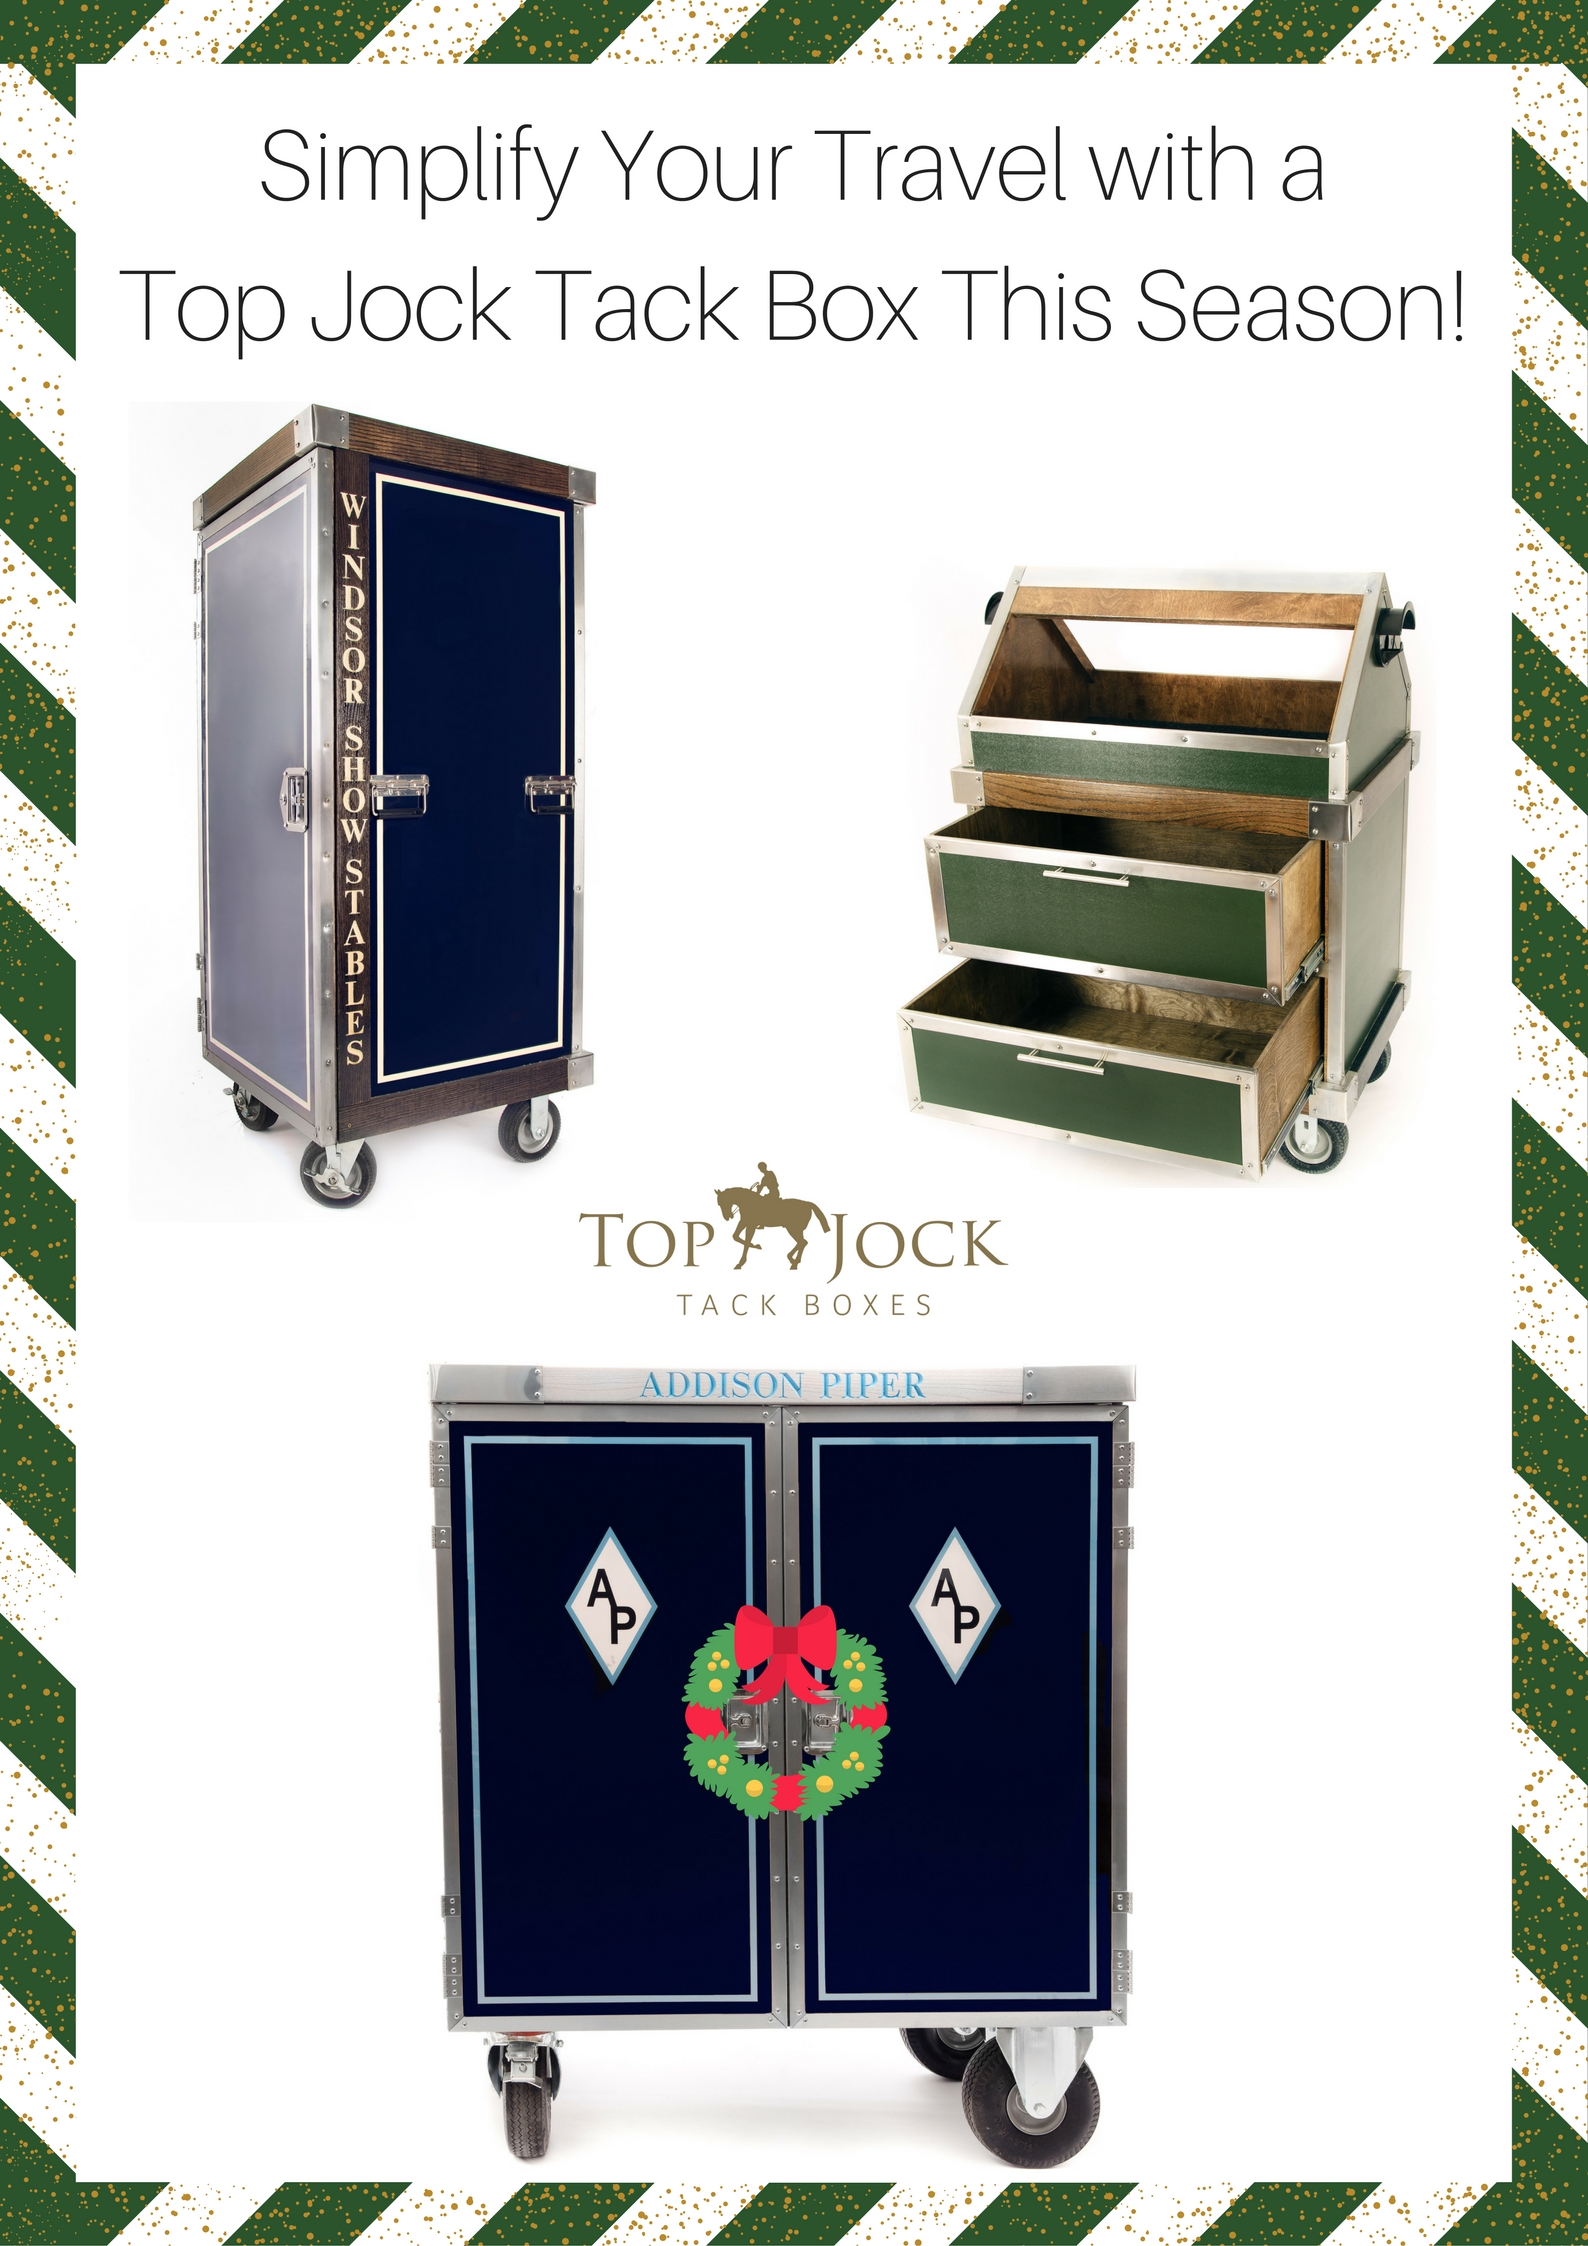 Simplify Your Travel with a Top Jock Tack Box This Season!